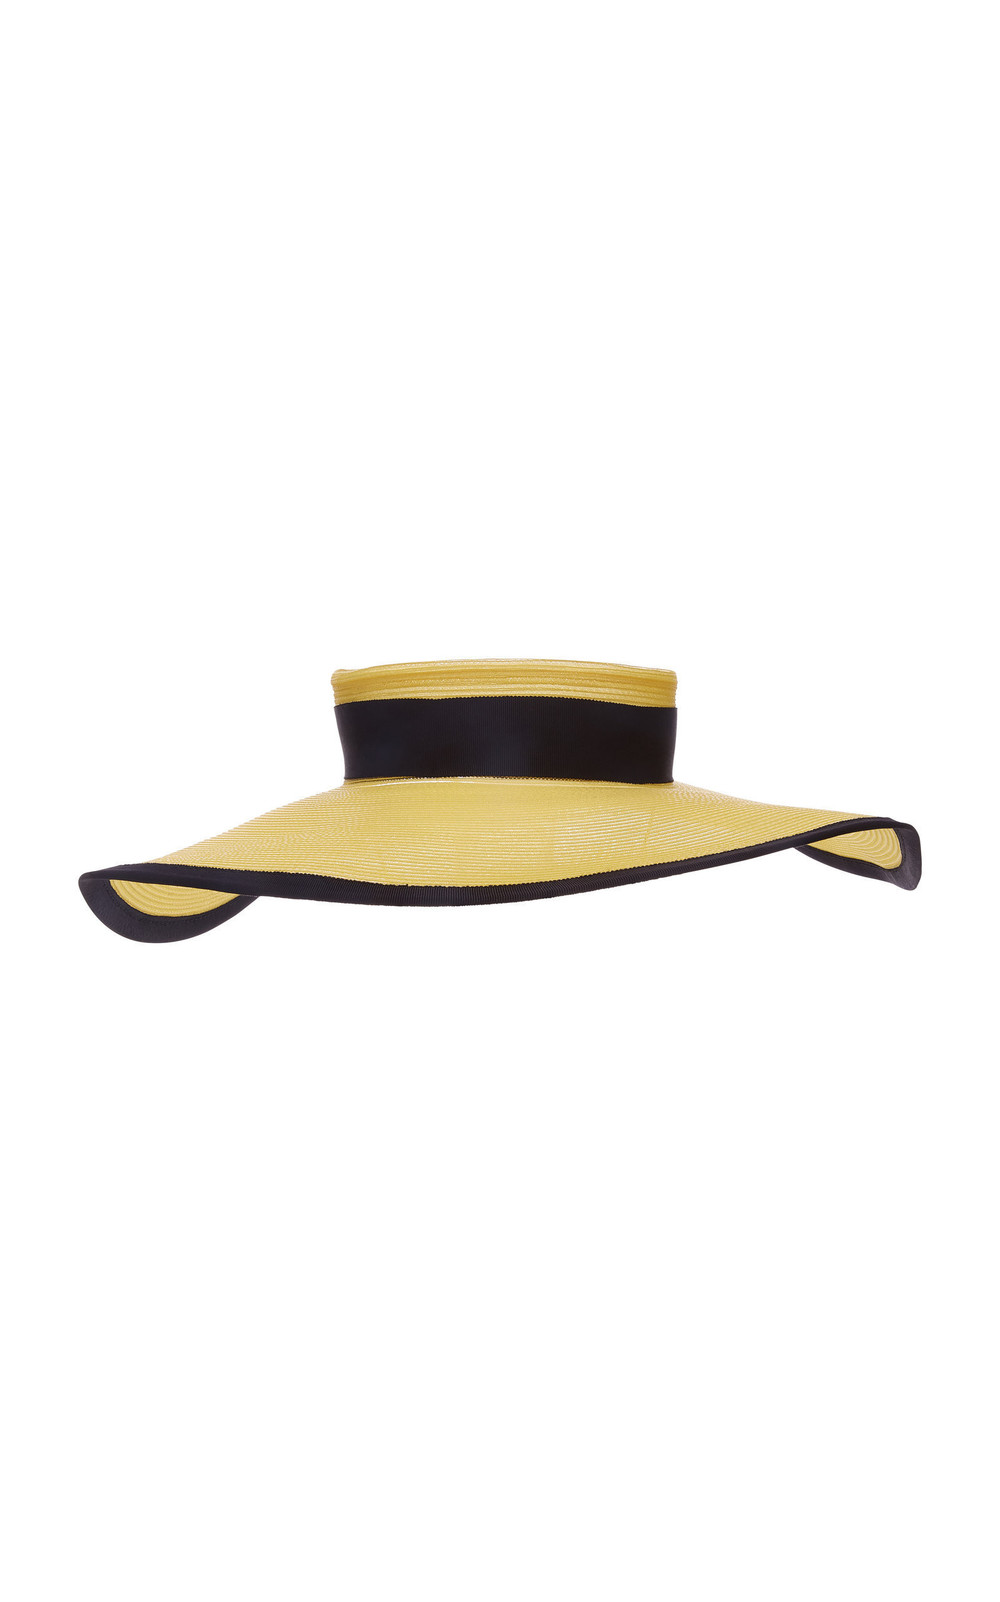 Eugenia Kim Bettie Canvas-Trimmed Straw Hat in yellow